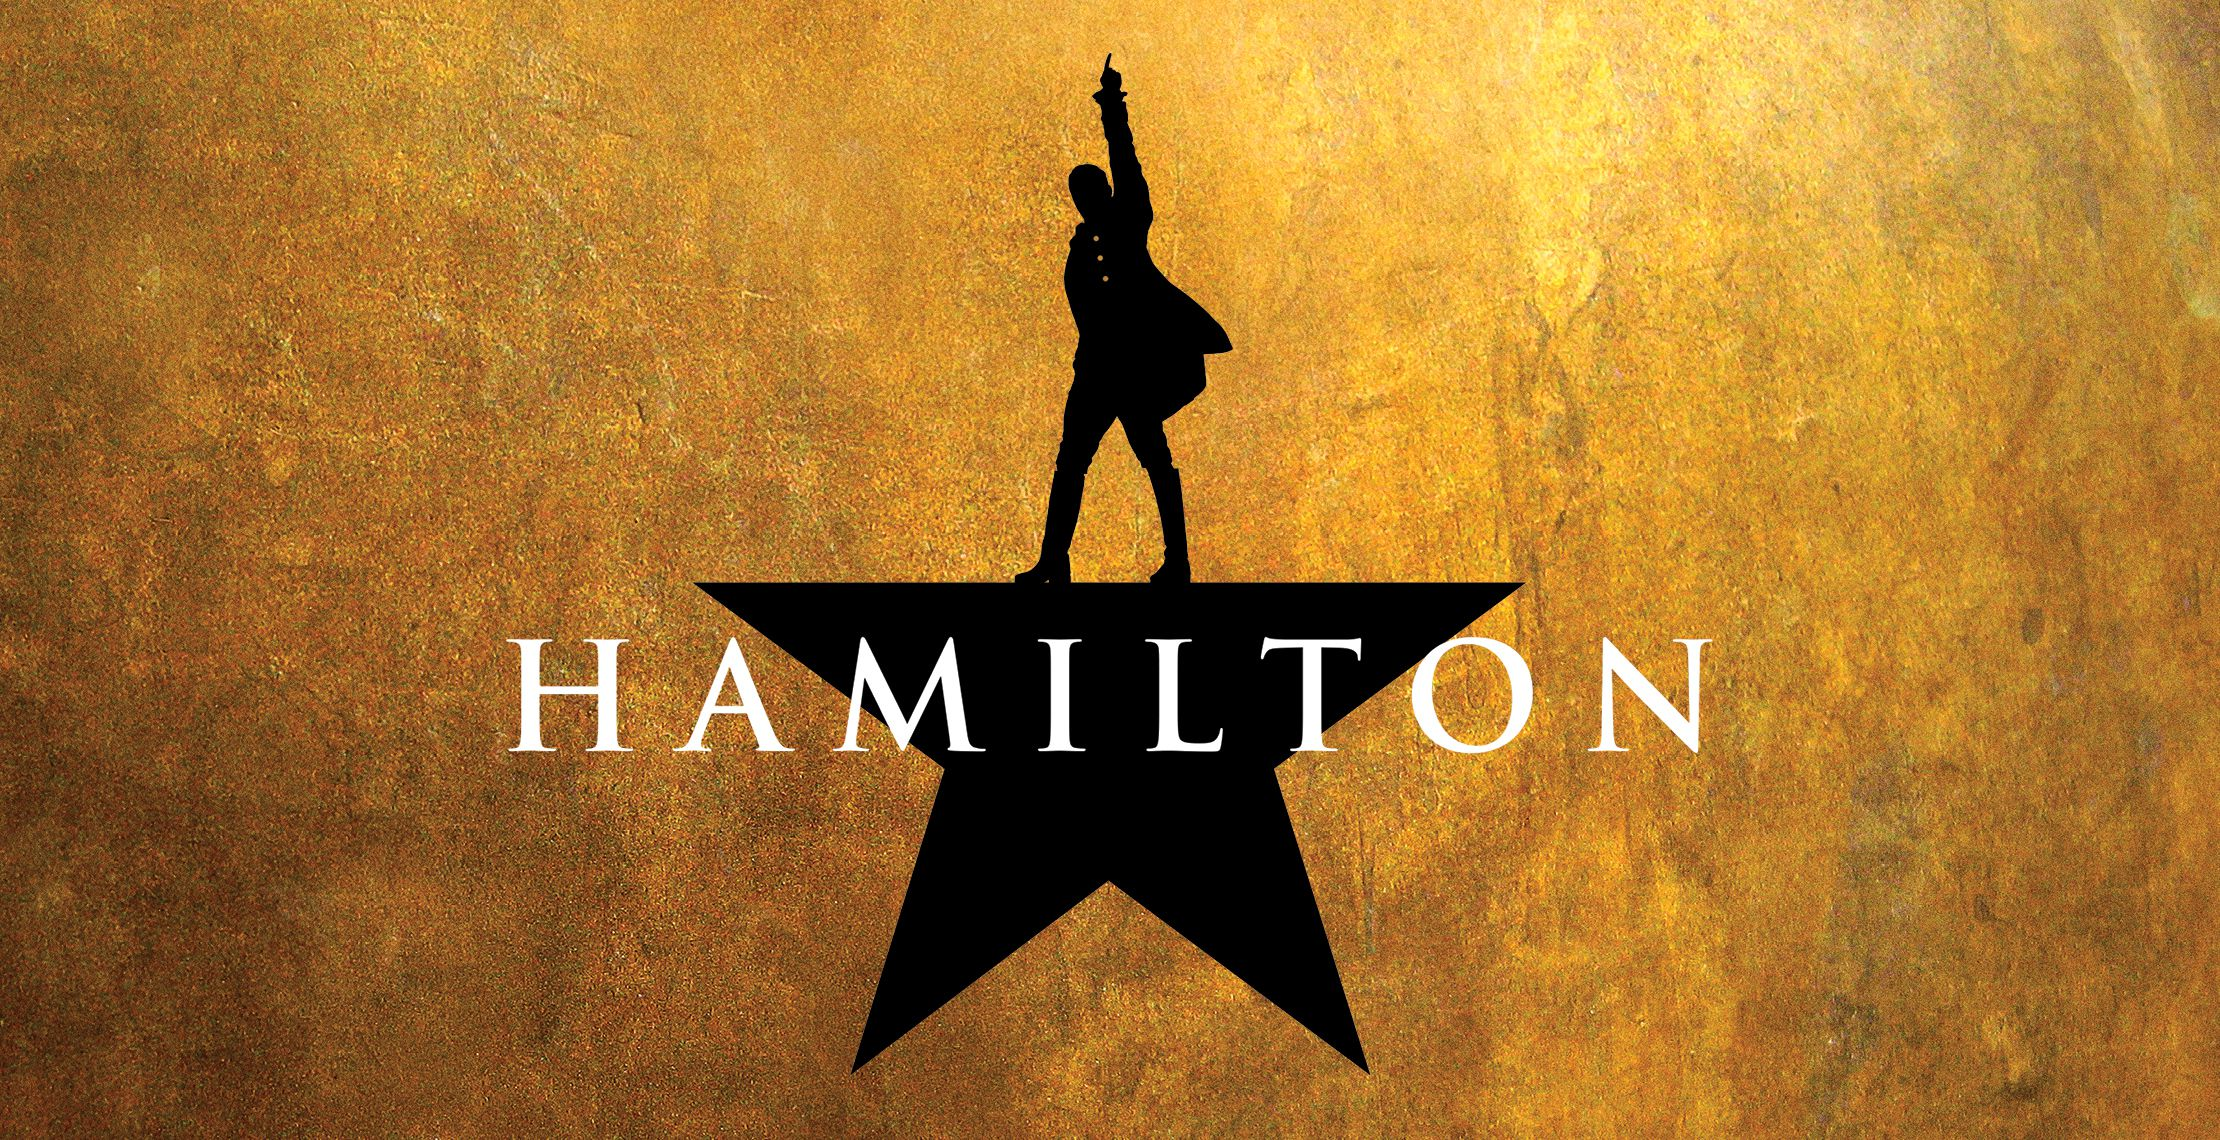 Broadway performances to return to Fox Theatre this summer